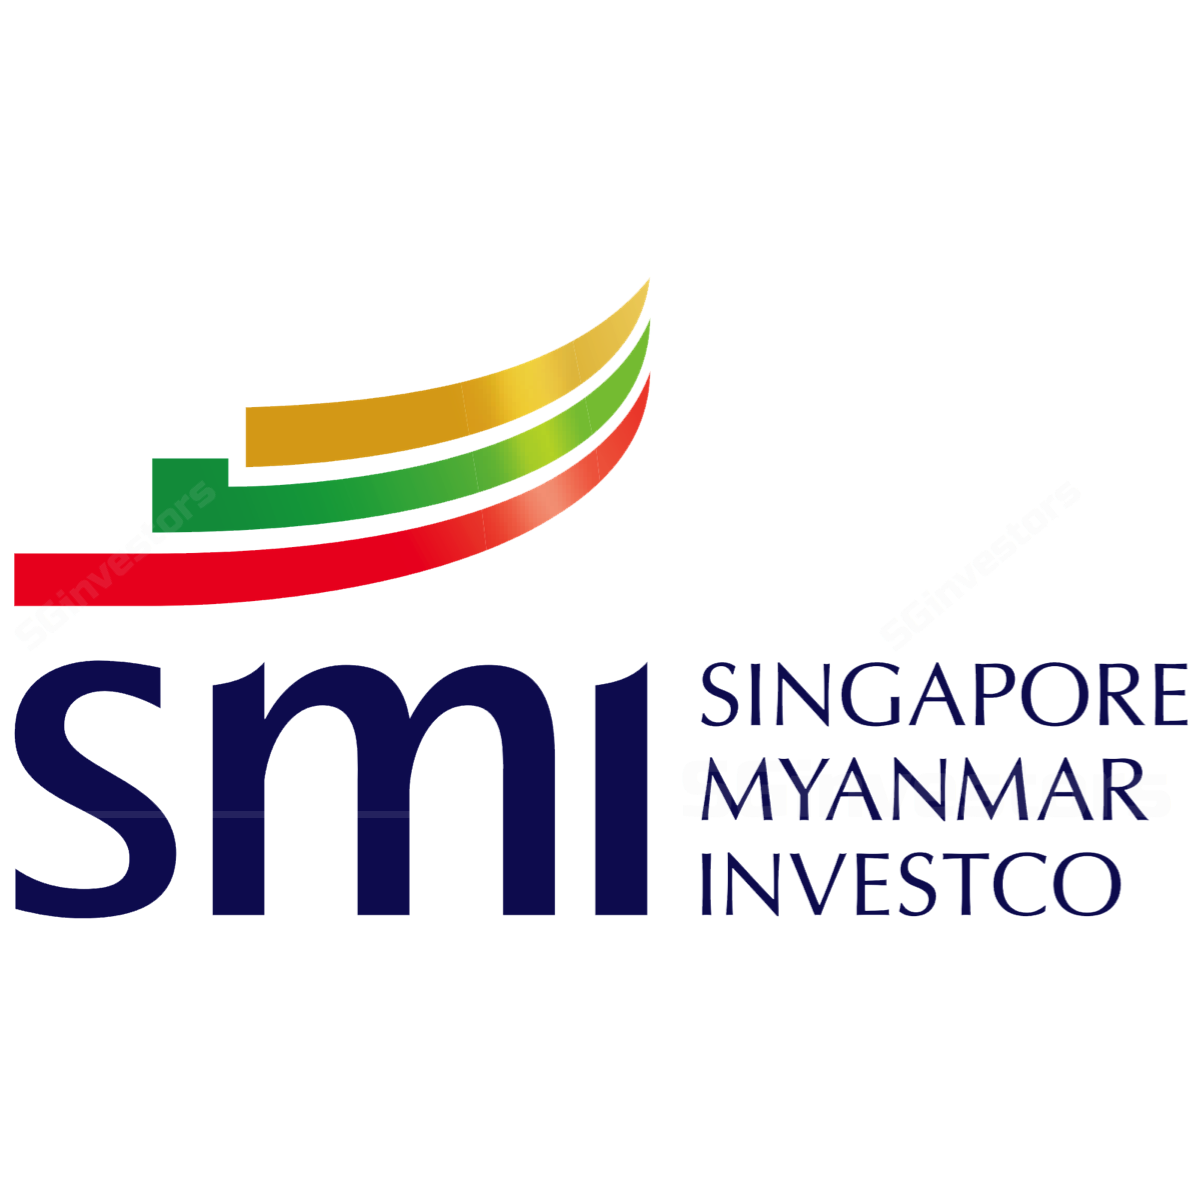 Singapore Myanmar Investco - OCBC Investment 2017-04-07: Retail and F&B venture in Junction City